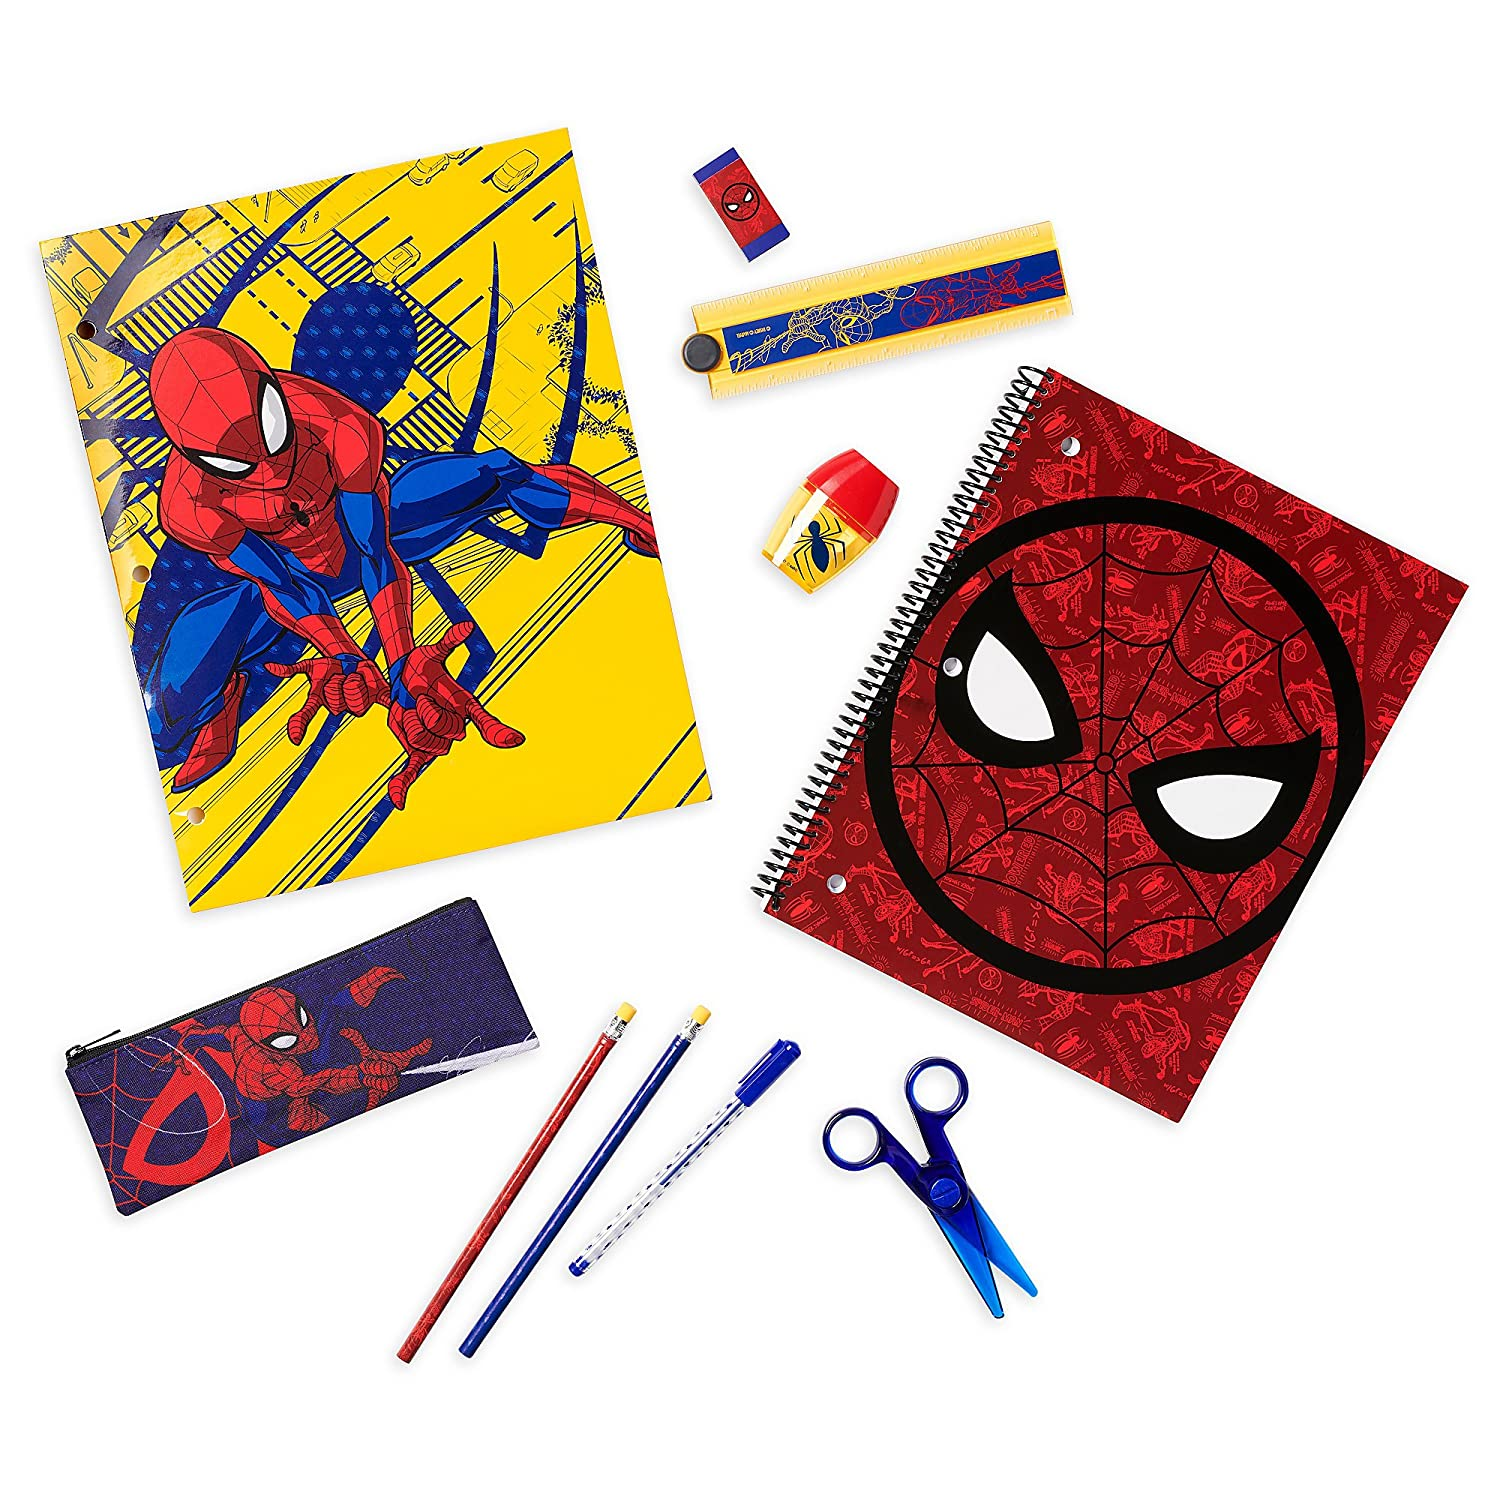 Disney Spider-Man Stationery Supply Kit